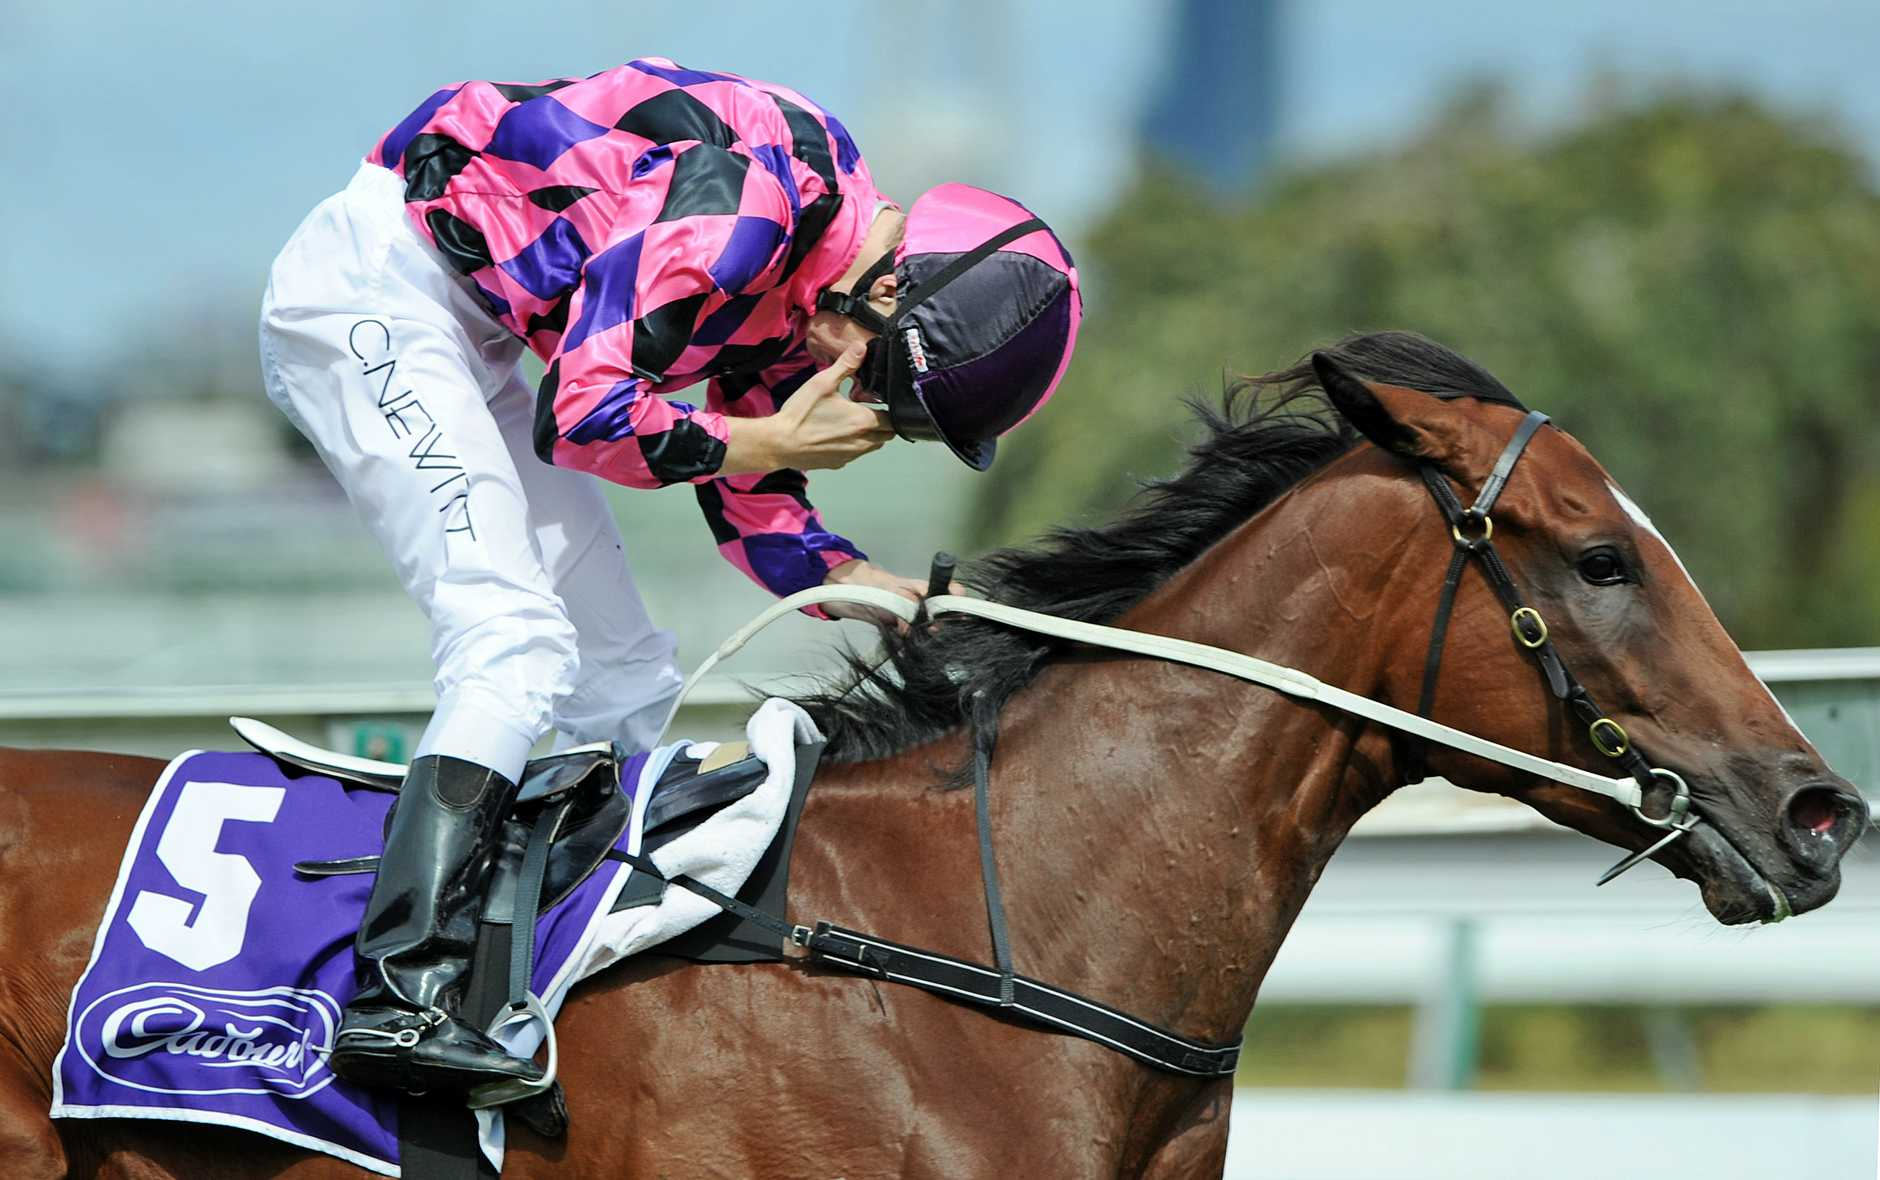 An emotional Newitt rides Heart of Dreams past the finish line to win the $750,000 Cadbury Guineas at Flemington race track in March 2009. Newitt dedicated the win to his father who had died the previous week.